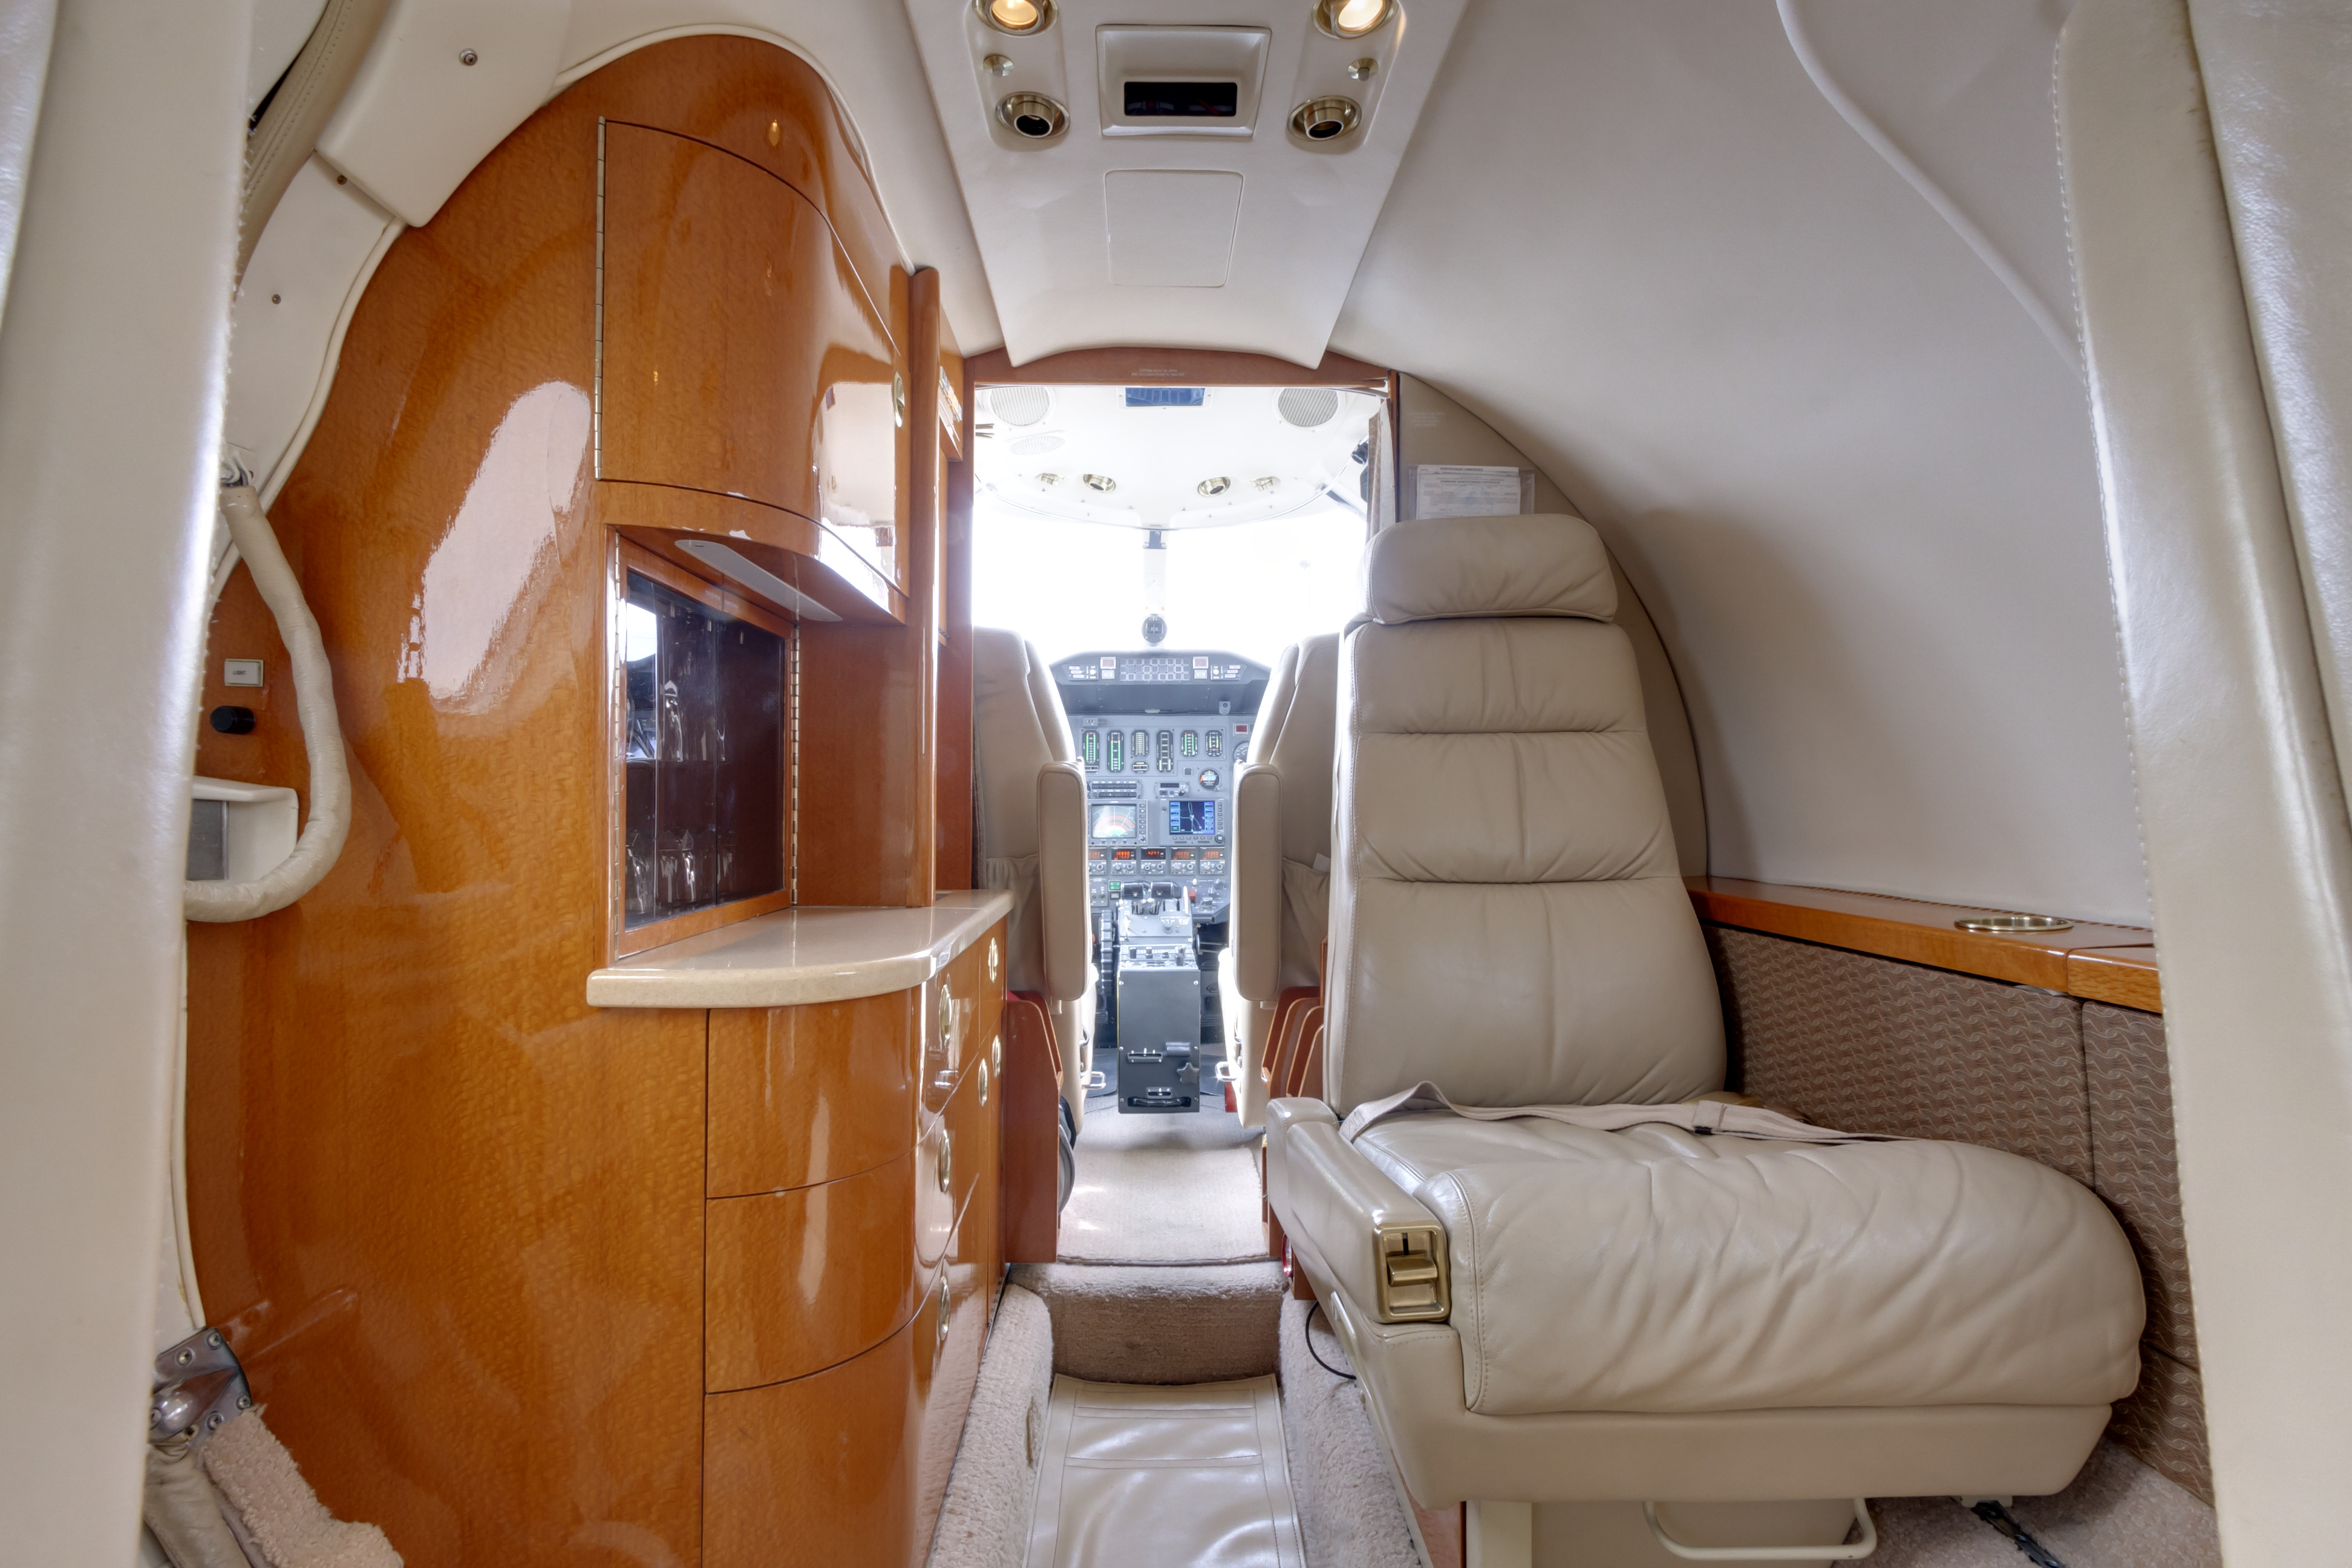 fargo-jet-center-charter-citation-sII-interior